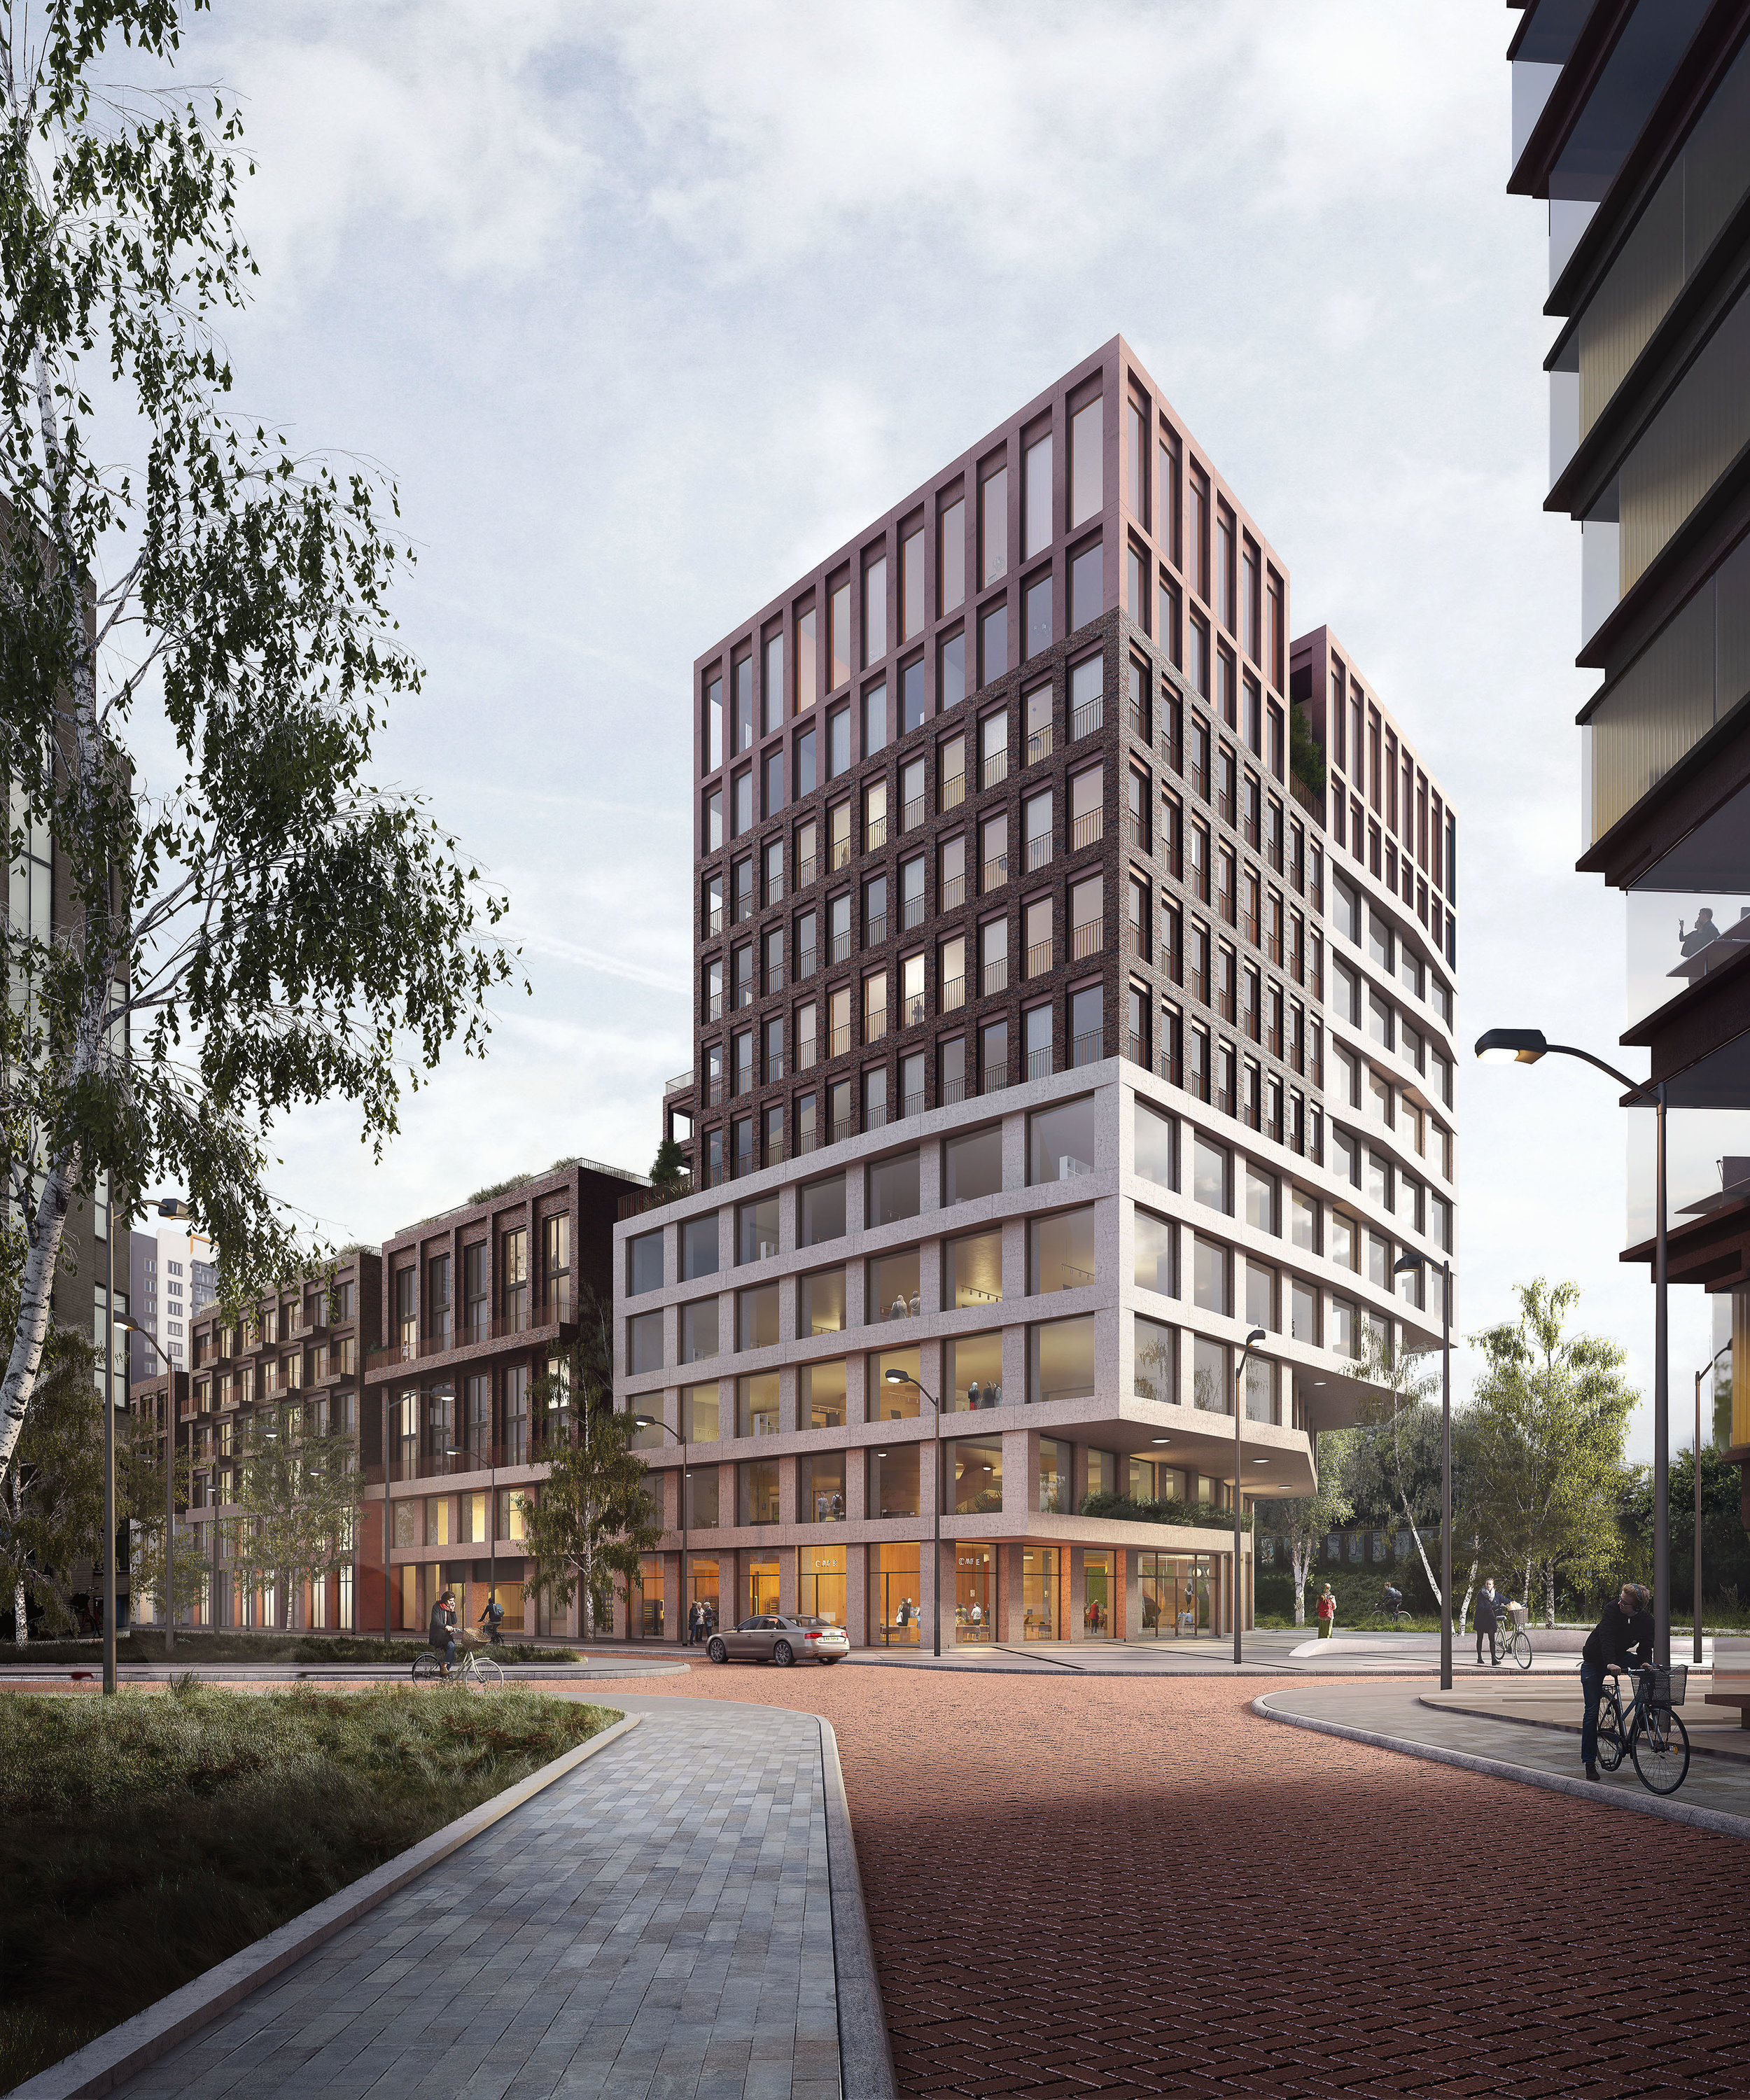 Kop Zuidas. Competition entry for the development of mixed-use buildings in Zuidas NL.